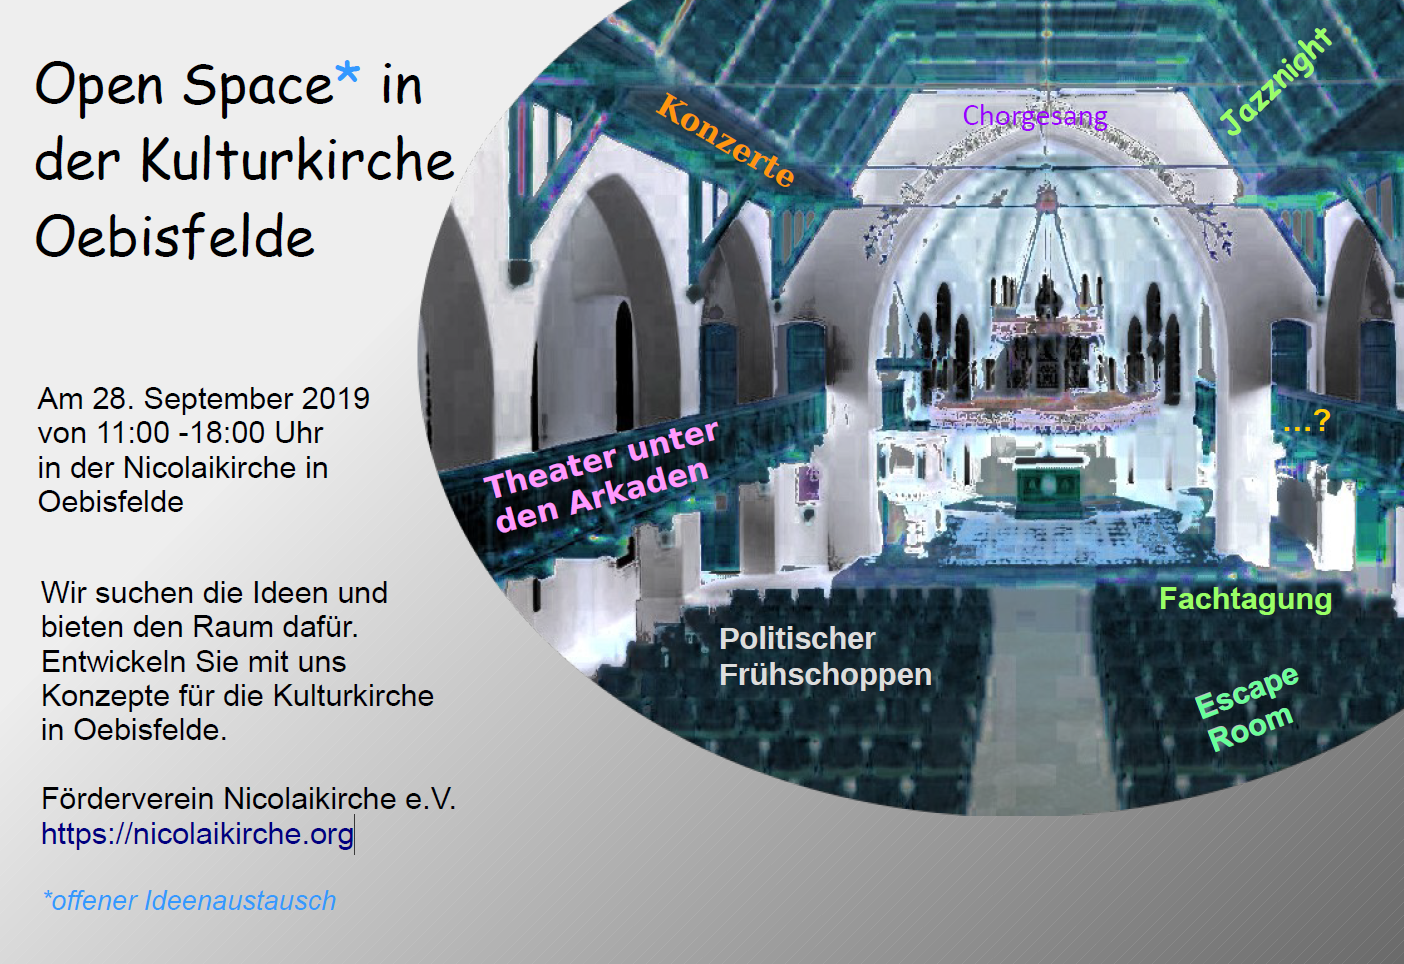 Open Space am 28.9.2019 in der Nicolaikirche